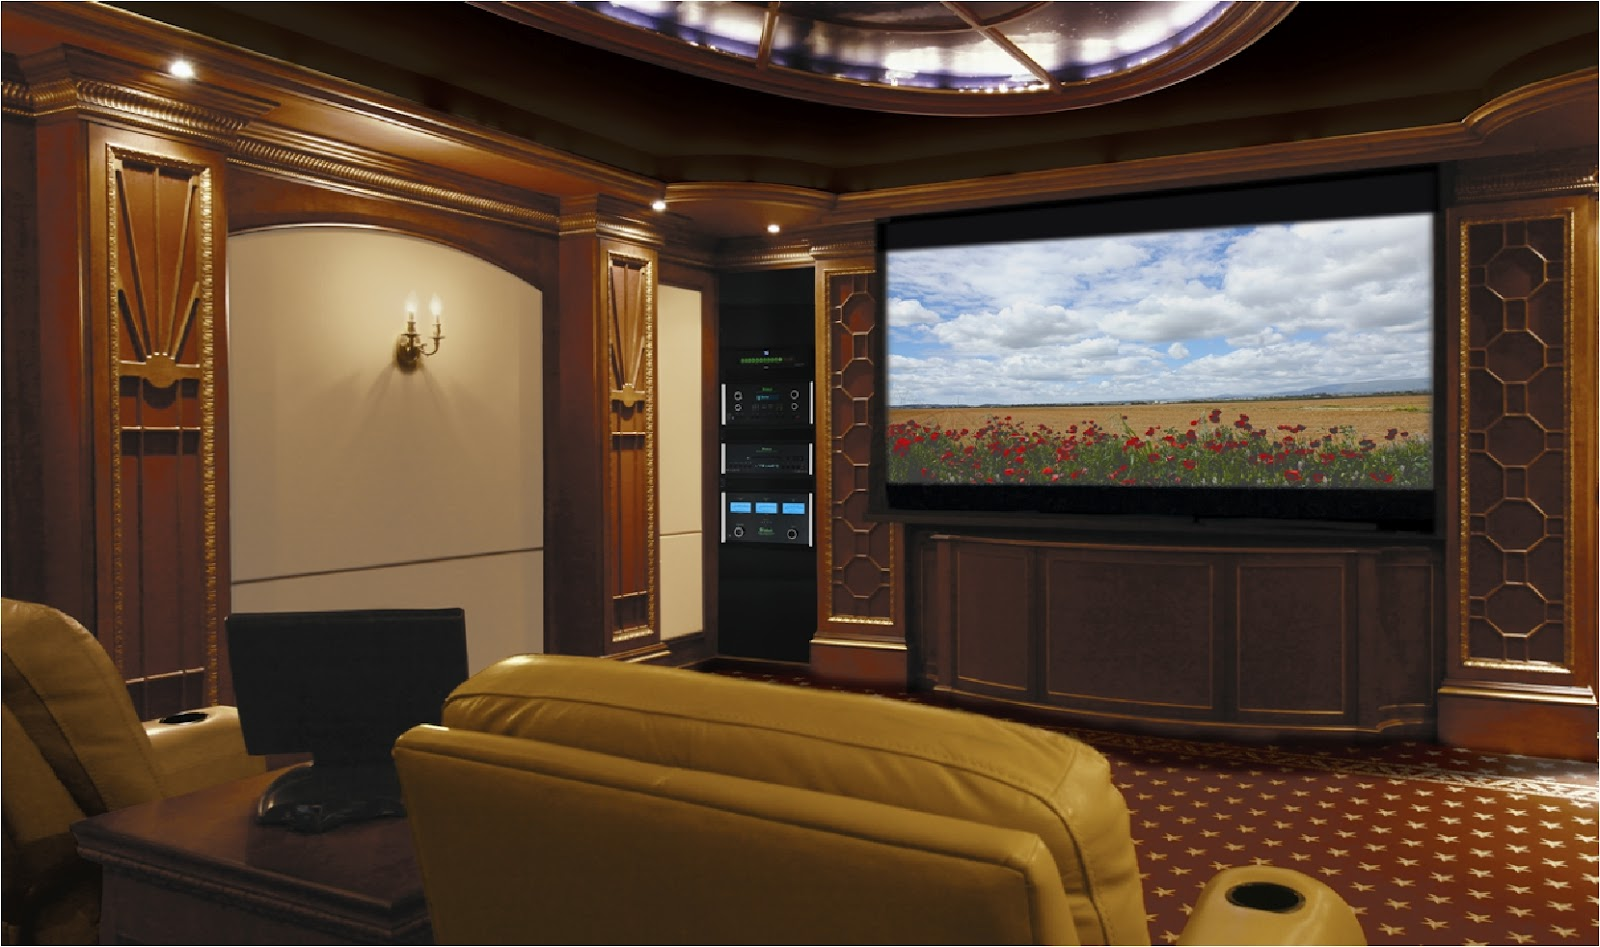 home depot bellevue ky with High End Home Theater Systems on Firing Order 160980 additionally Flood 37 furthermore Decorative Pull Chain together with Staging Bedrooms also High End Home Theater Systems.